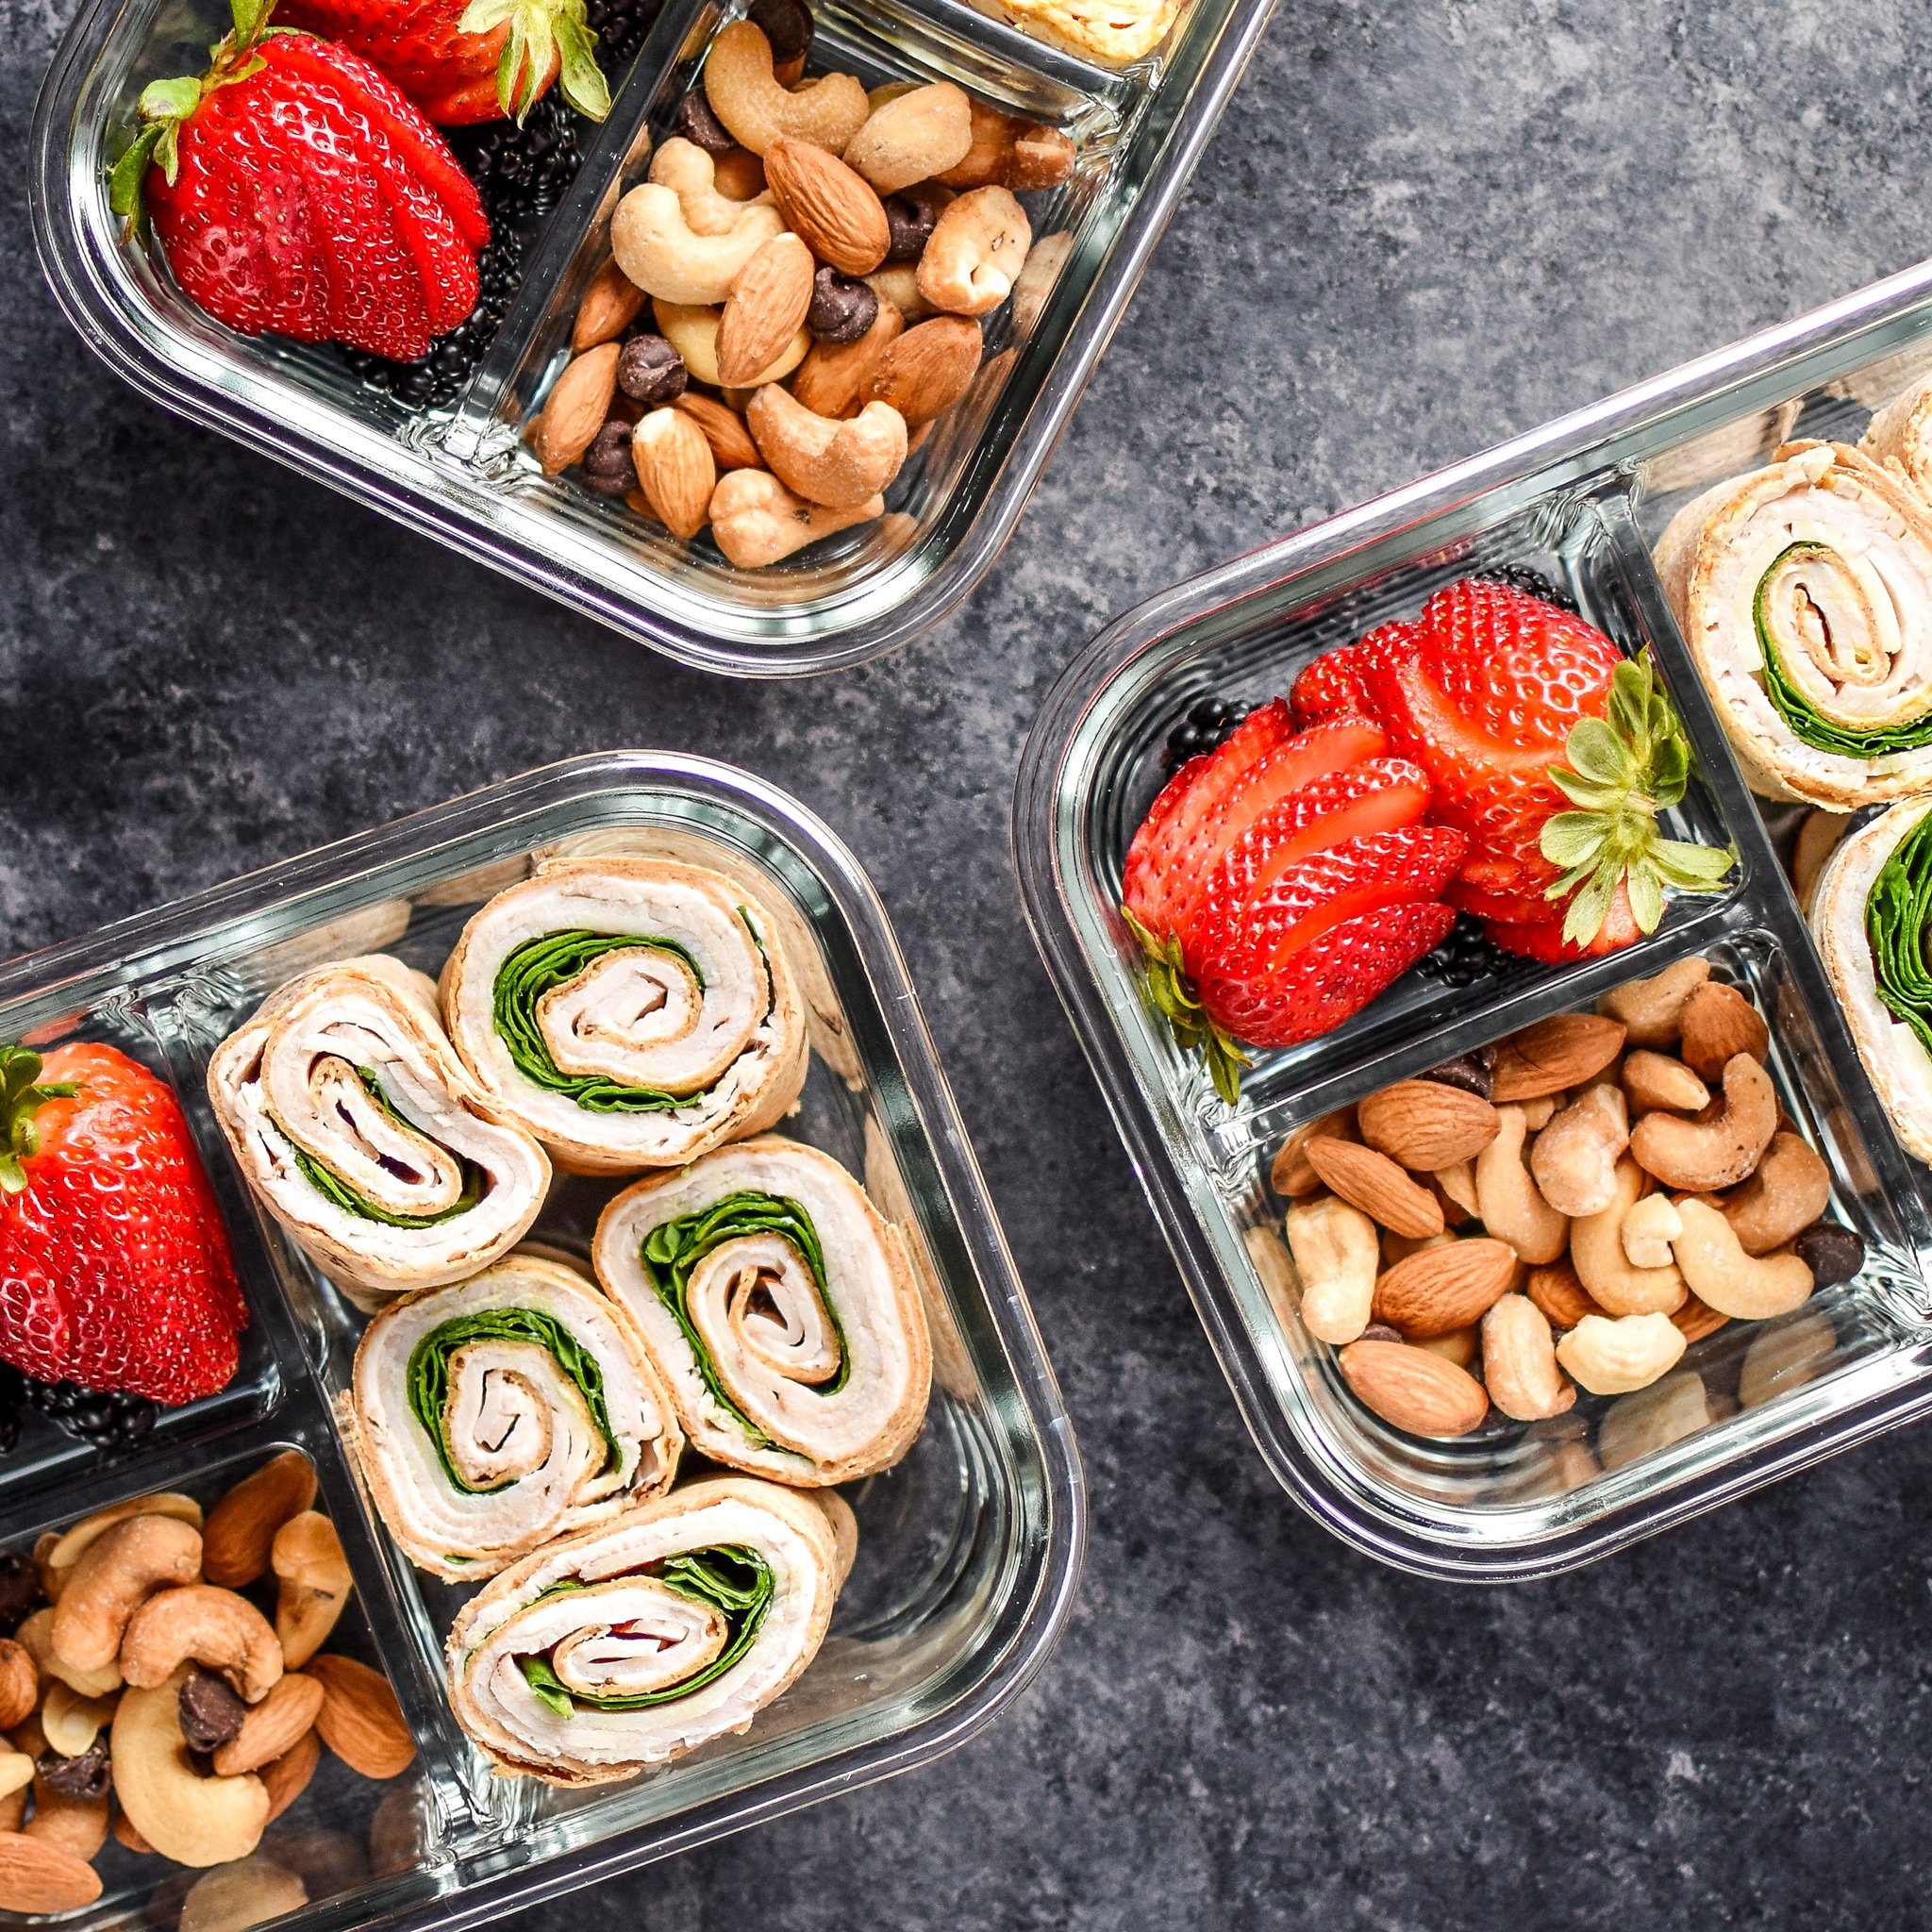 Turkey pinwheels are an excellent no heat lunch option. Served here with nuts and fruit.